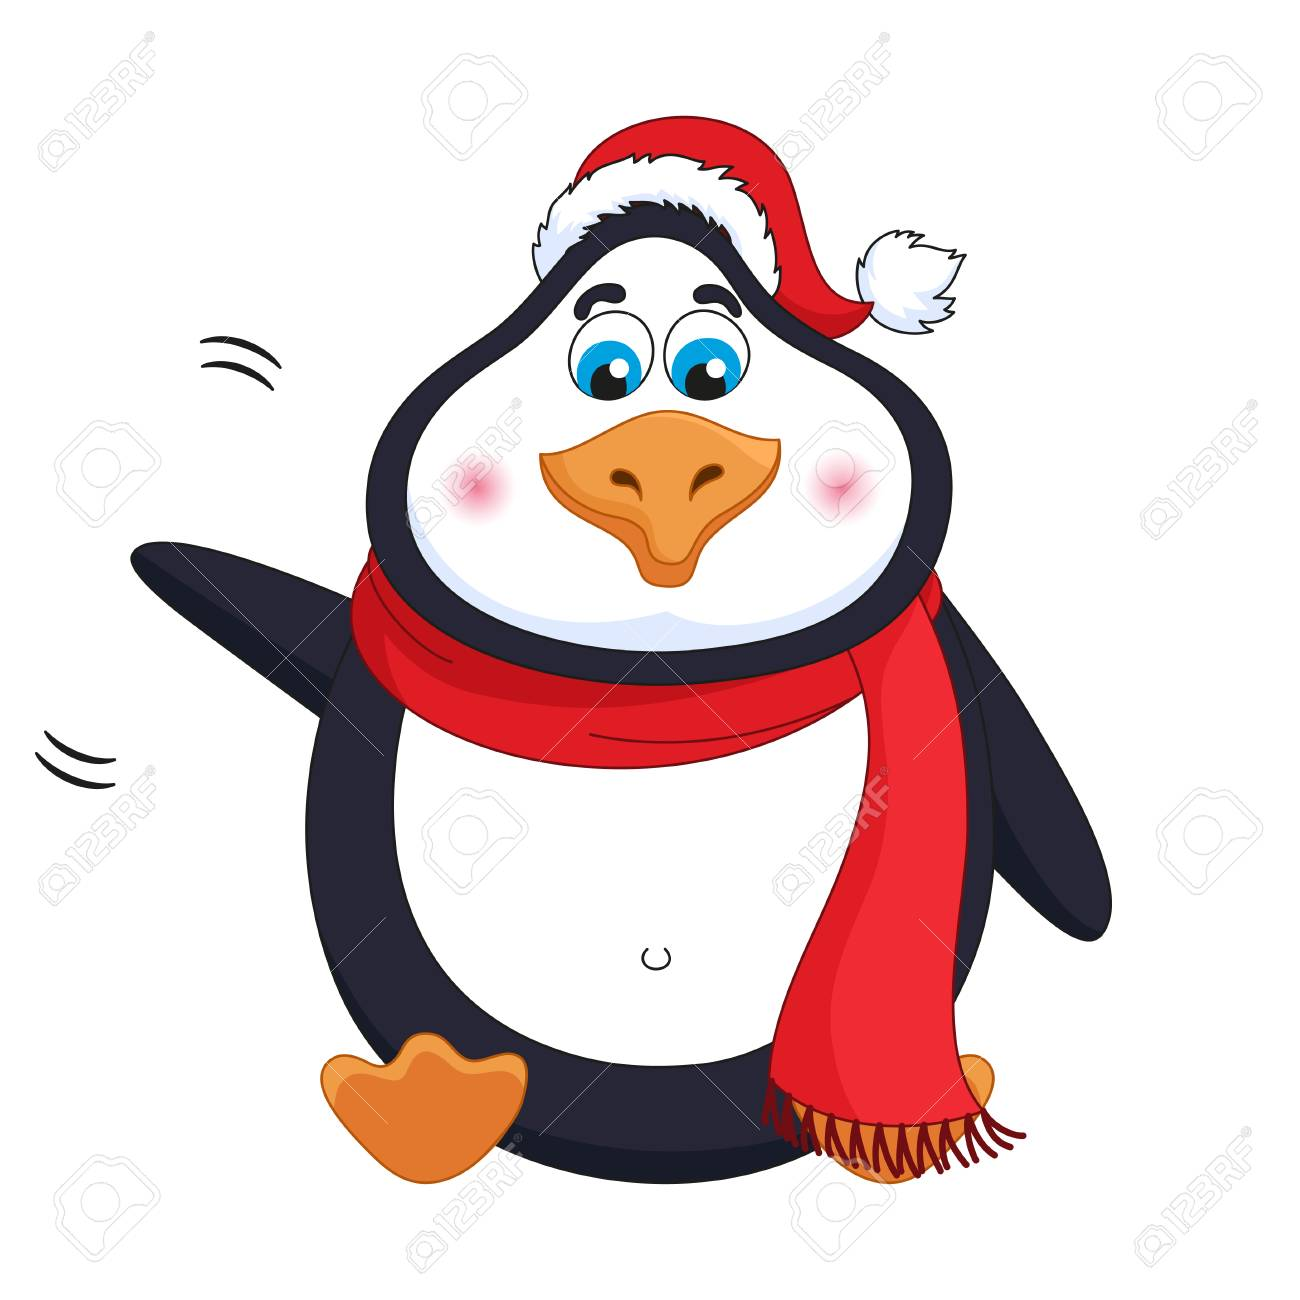 New Years cheerful cute penguin in winter red hat and scarf sits, fat birdie welcomes, waves paw, greets, funny character, vector illustration - 111849170